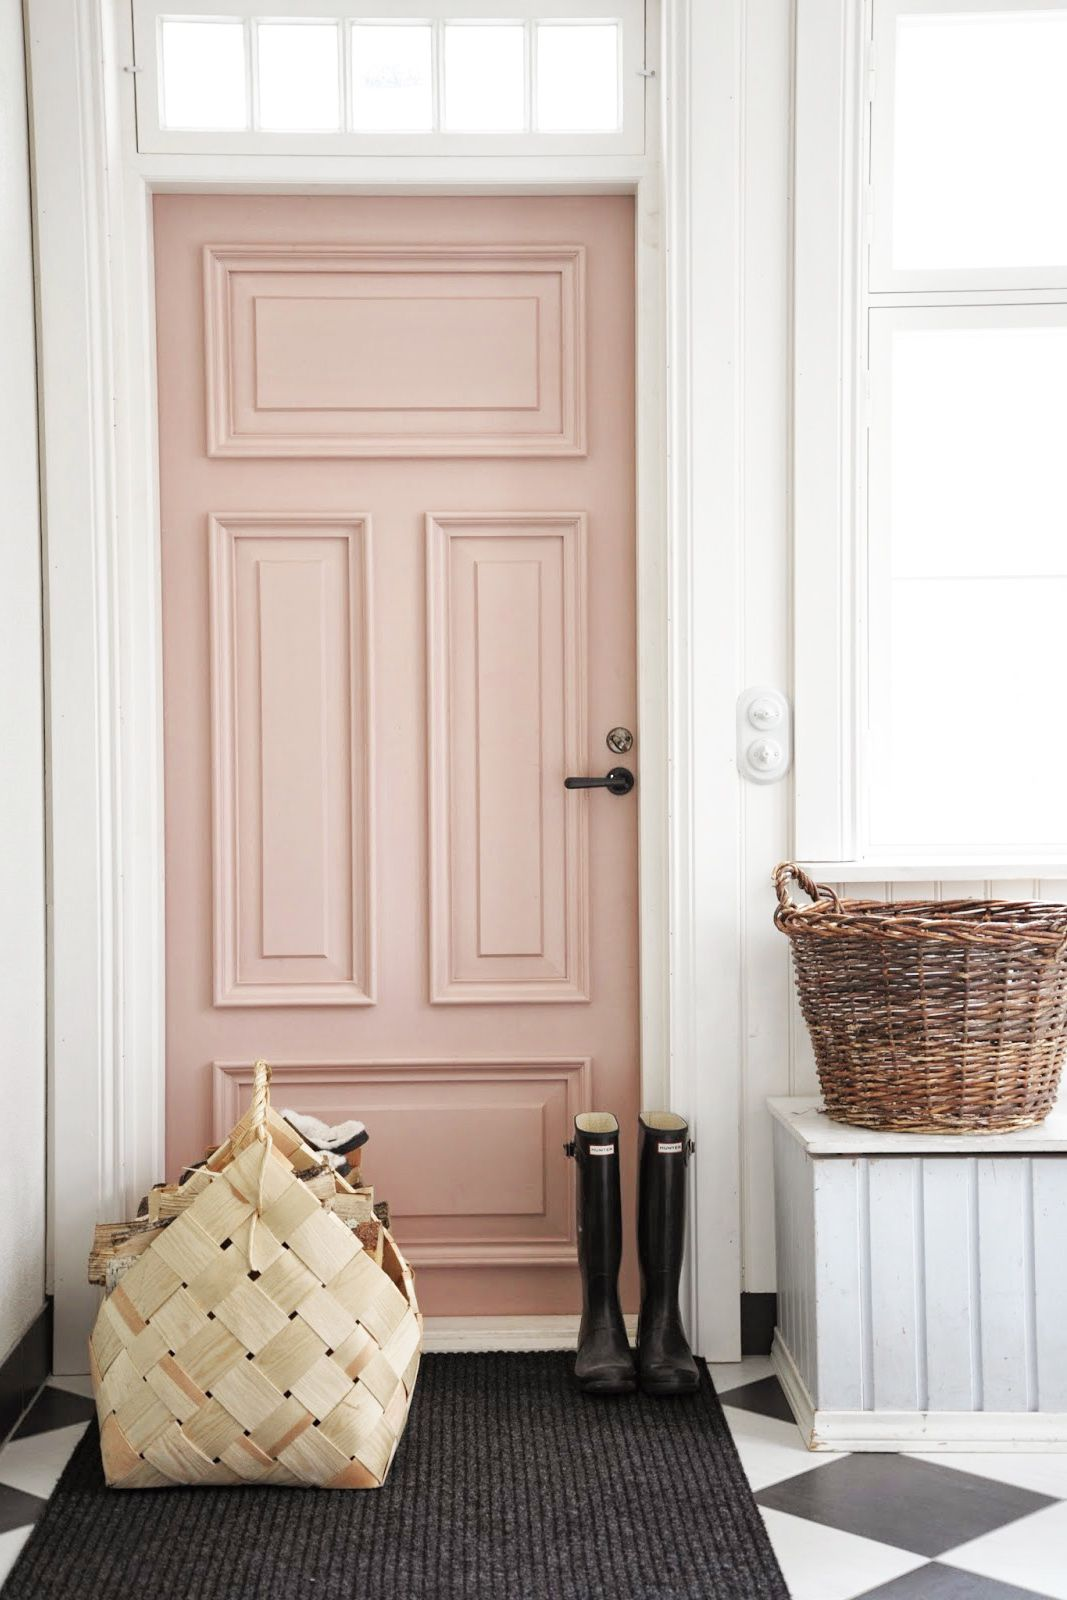 Rose door inside home with tiled black-and-white floors